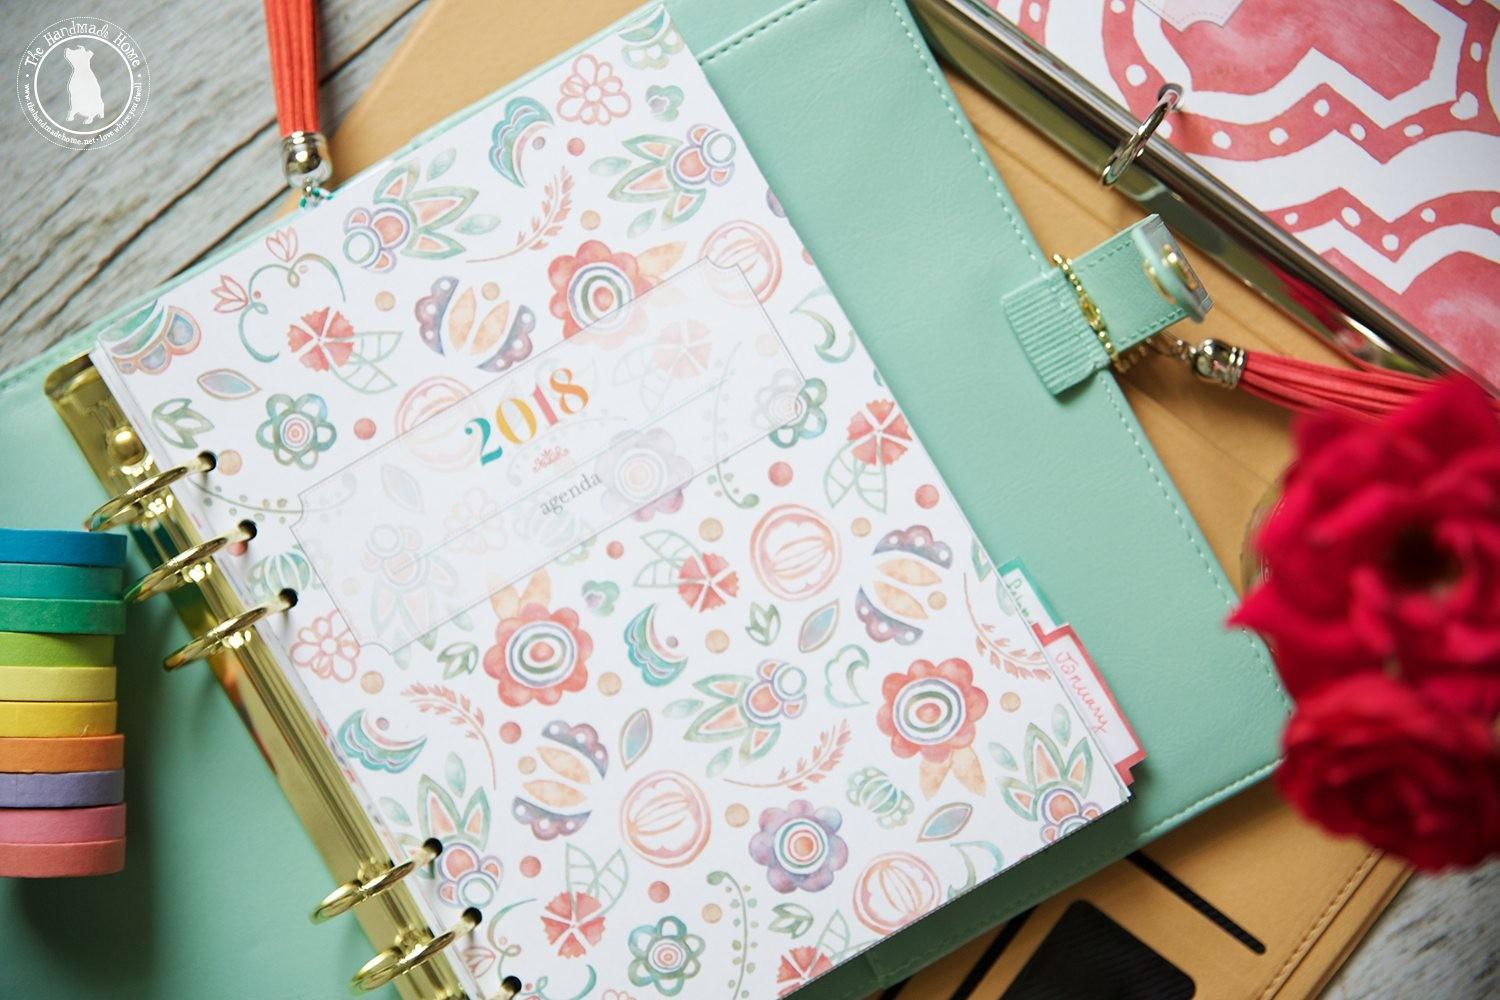 Planner 2018 Over 200 Customizable Files